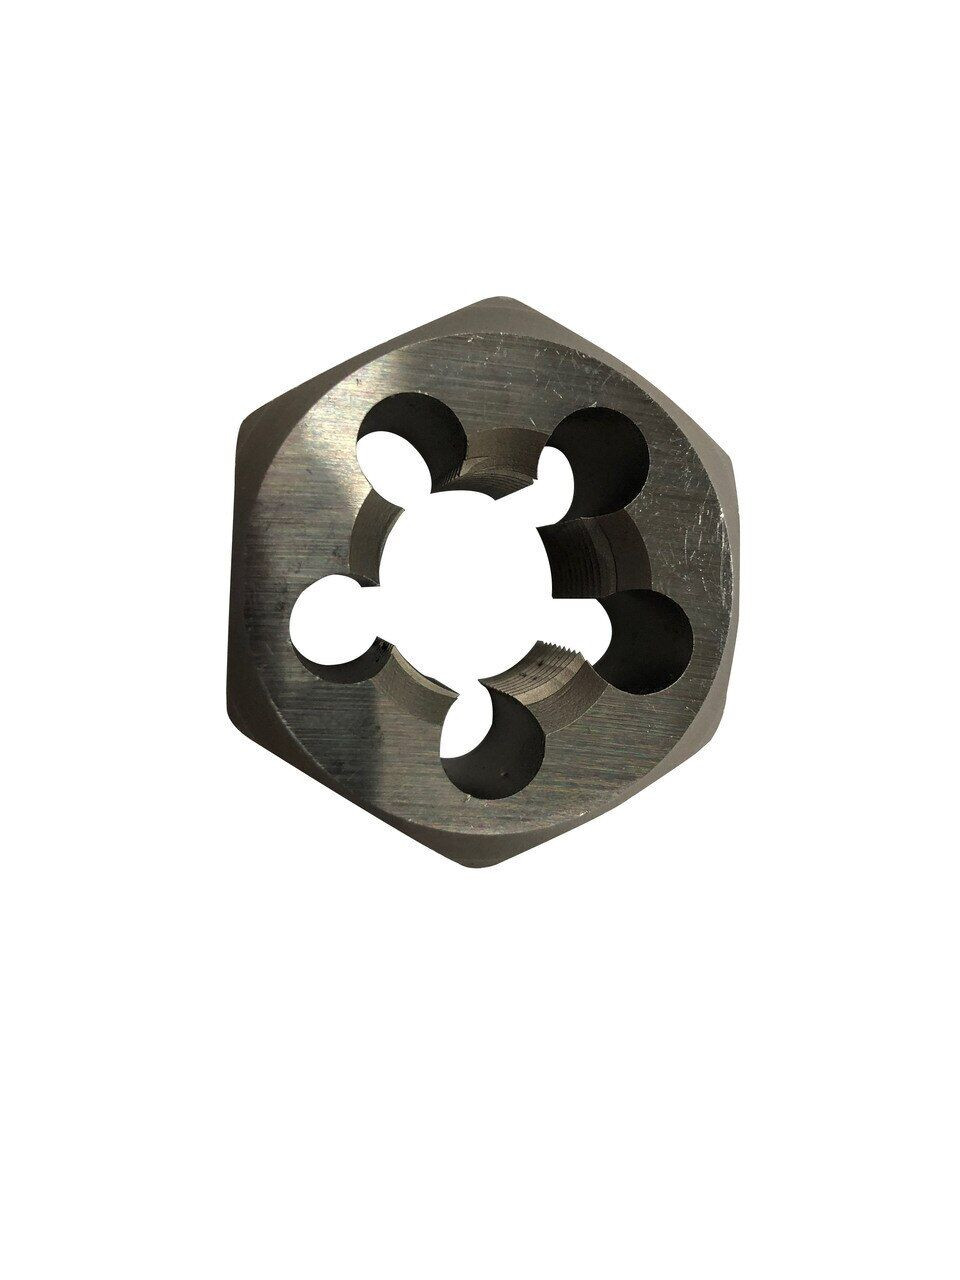 NPT 1/8-27  Left Hand Hexagon Pipe Die Carbon Steel USA